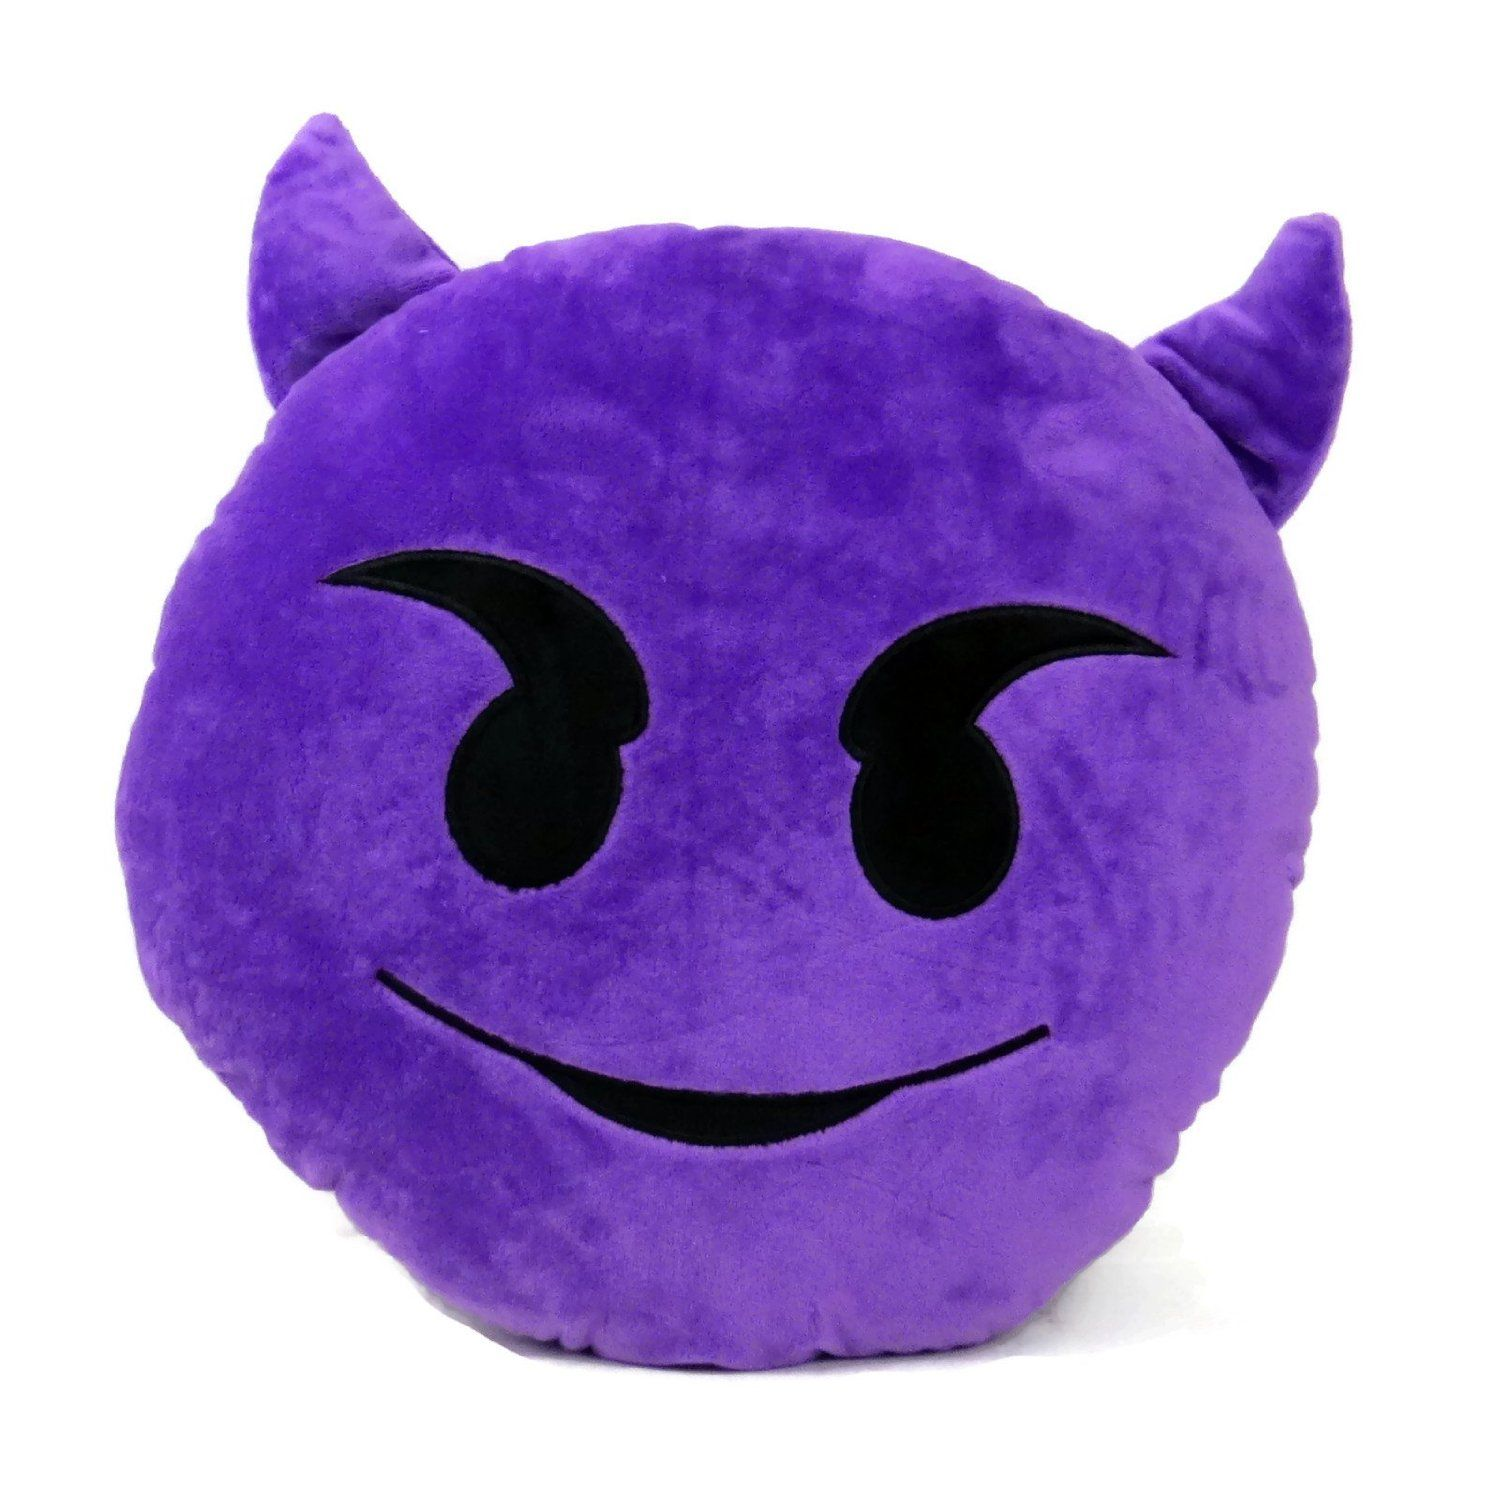 Amazon decorative soft plush stuffed purple demon emoji smiley